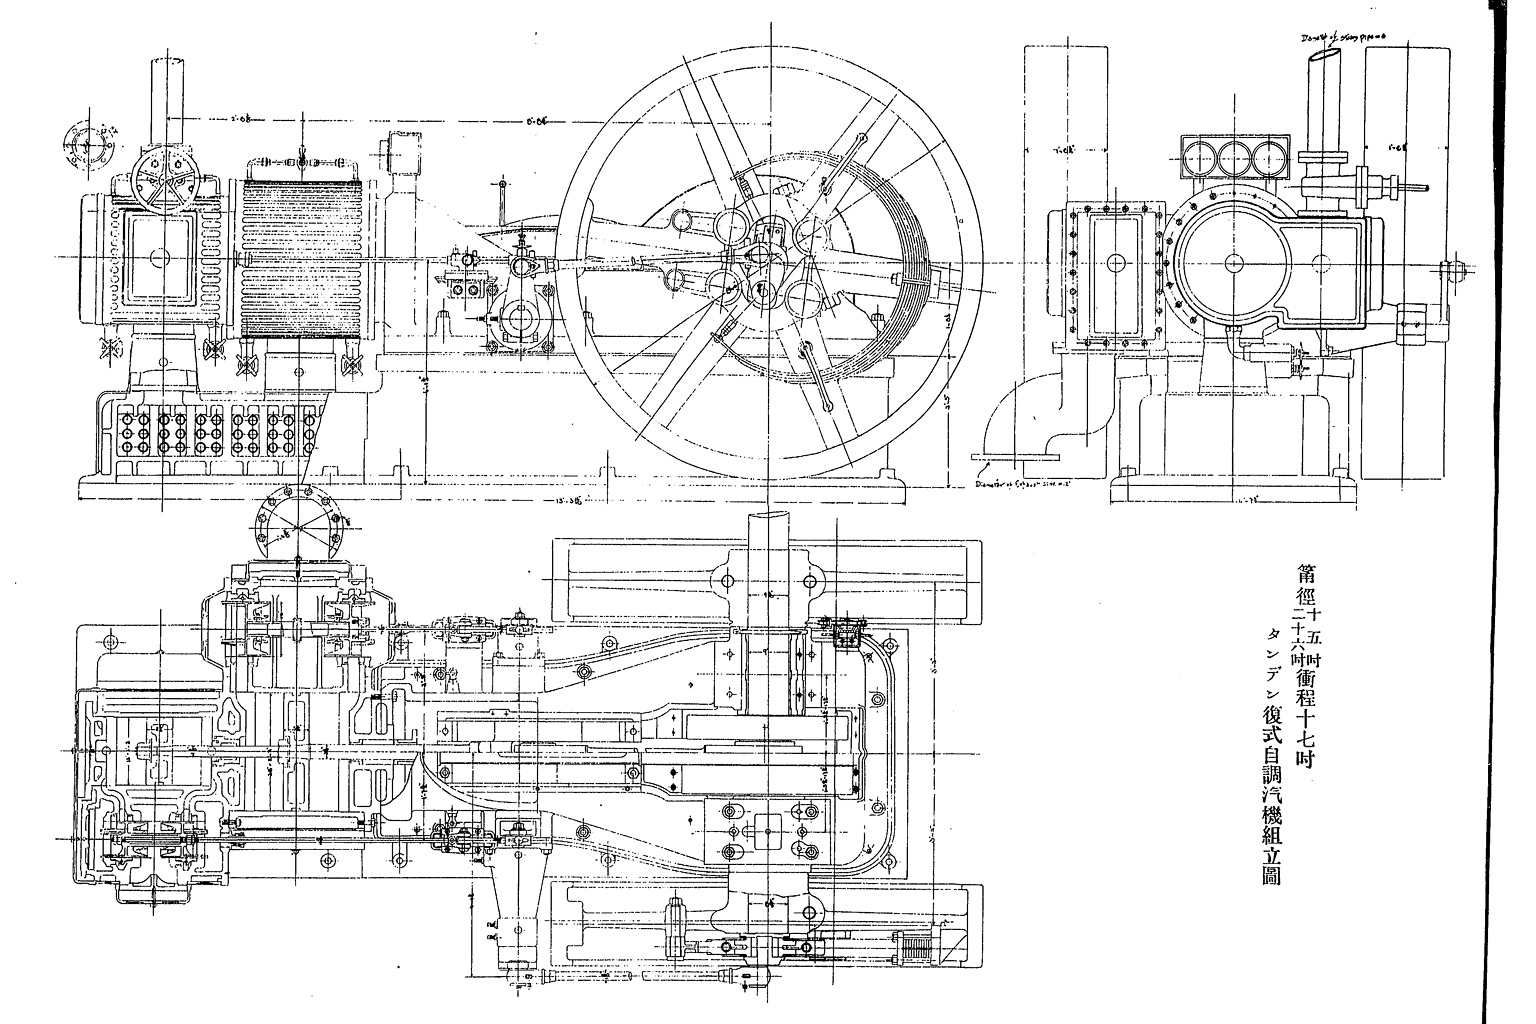 Twin Radial Airplane Engine in addition Flathead engine besides Old Airplane Diagram moreover 828l besides Rc Nitro Engine Diagram. on twin cylinder rc airplane engines